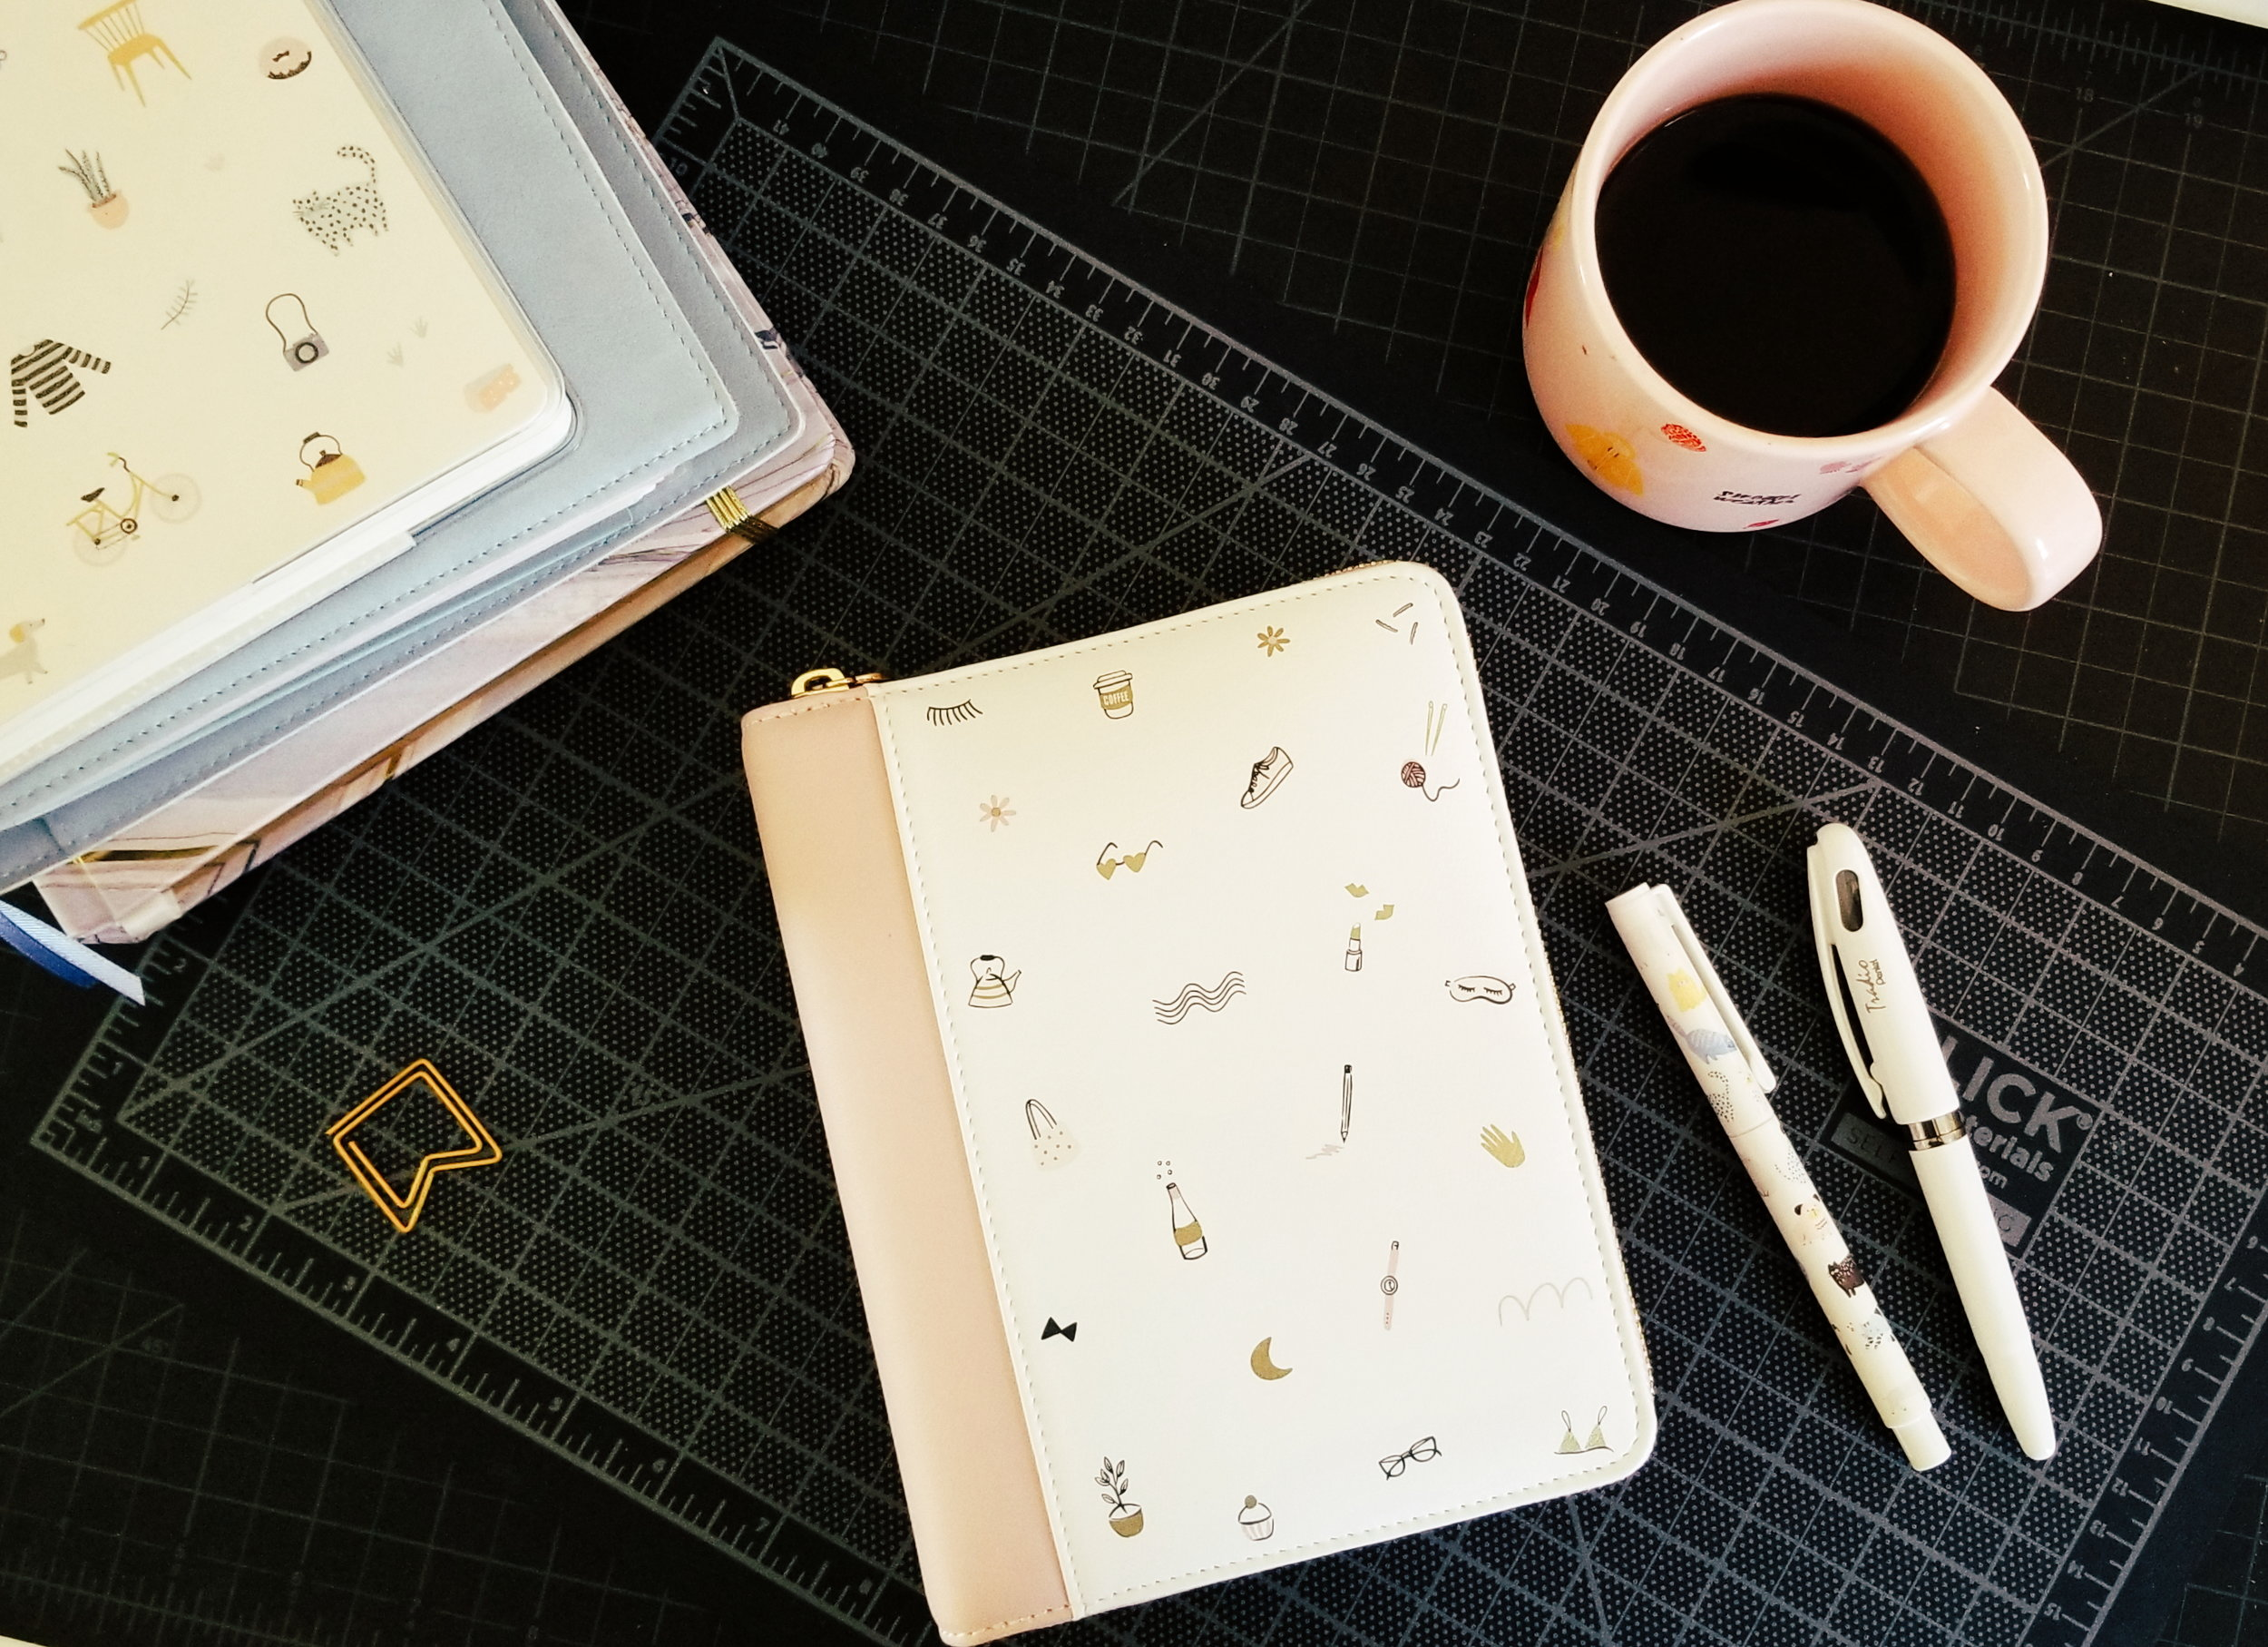 Everyday Carry Planner - A great compact little design perfect for on-the-go planning.